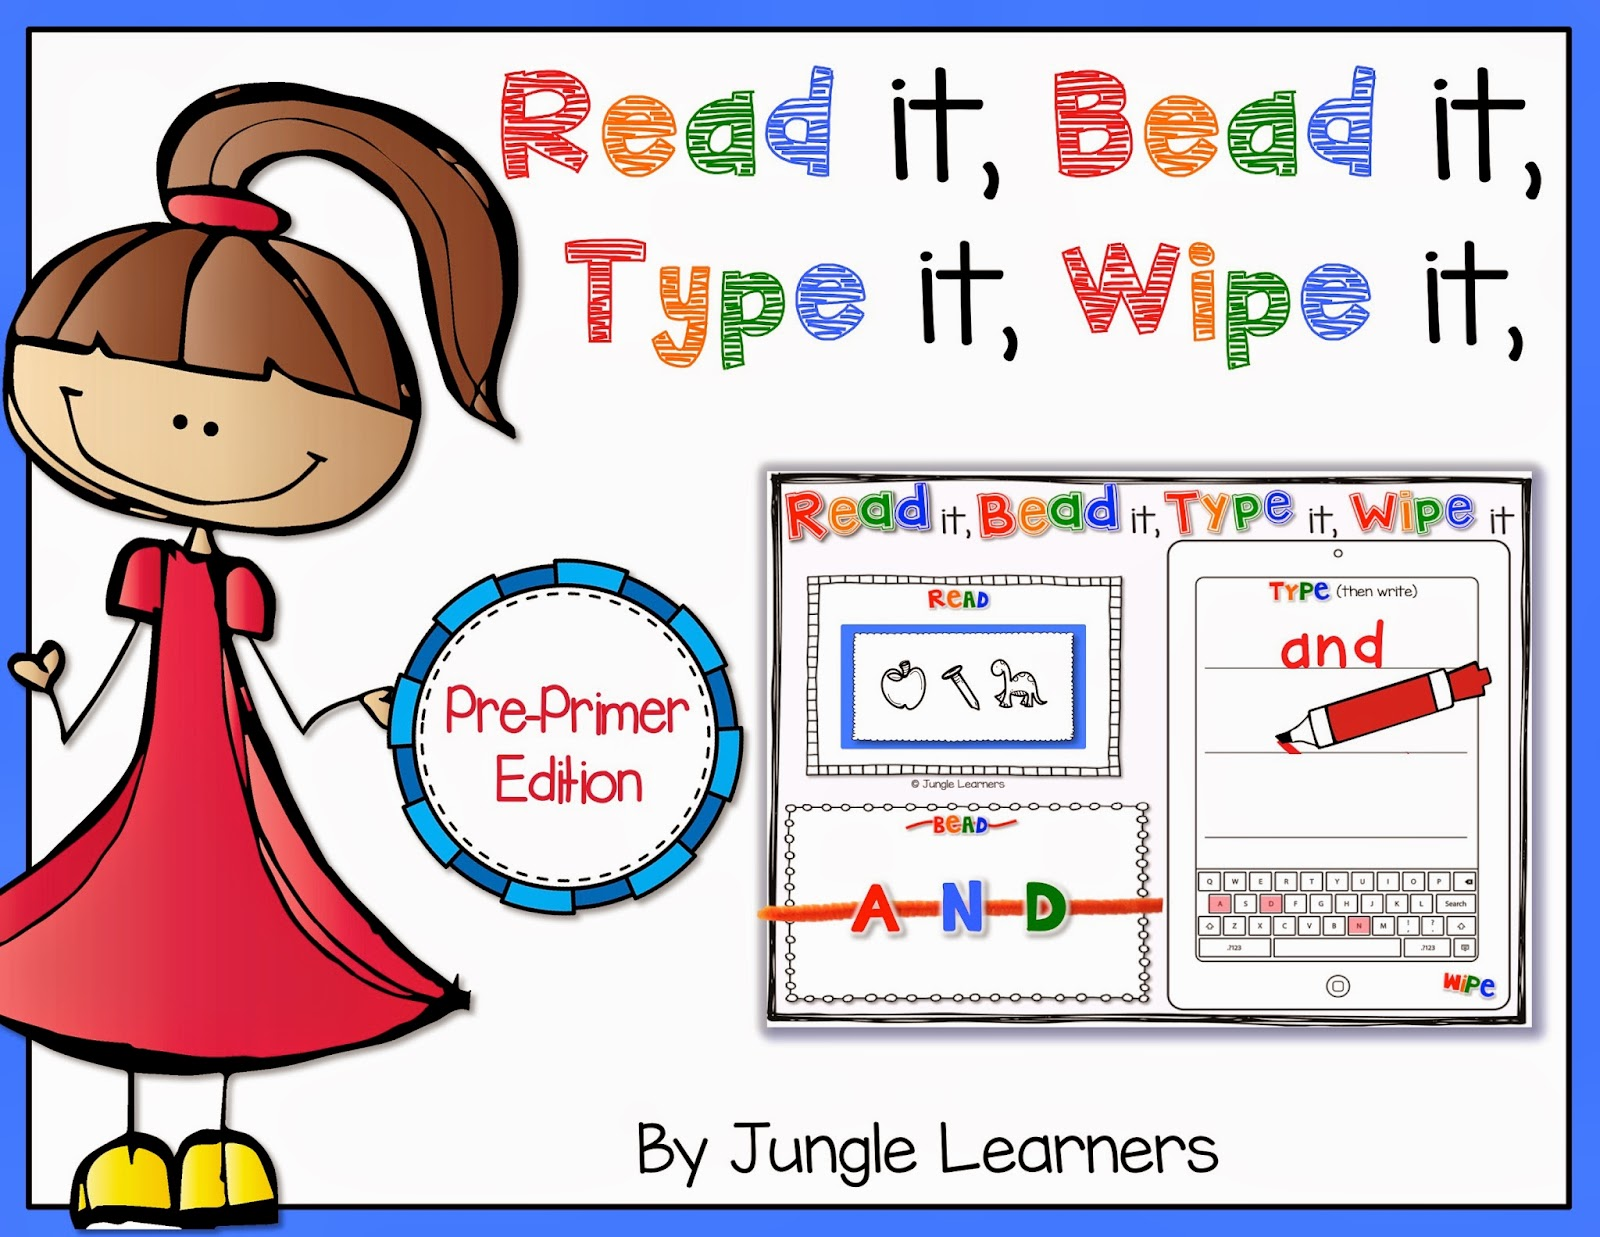 https://www.teacherspayteachers.com/Product/Read-it-Bead-it-Type-it-Wipe-it-Pre-Primer-Sight-Word-Edition-1440272